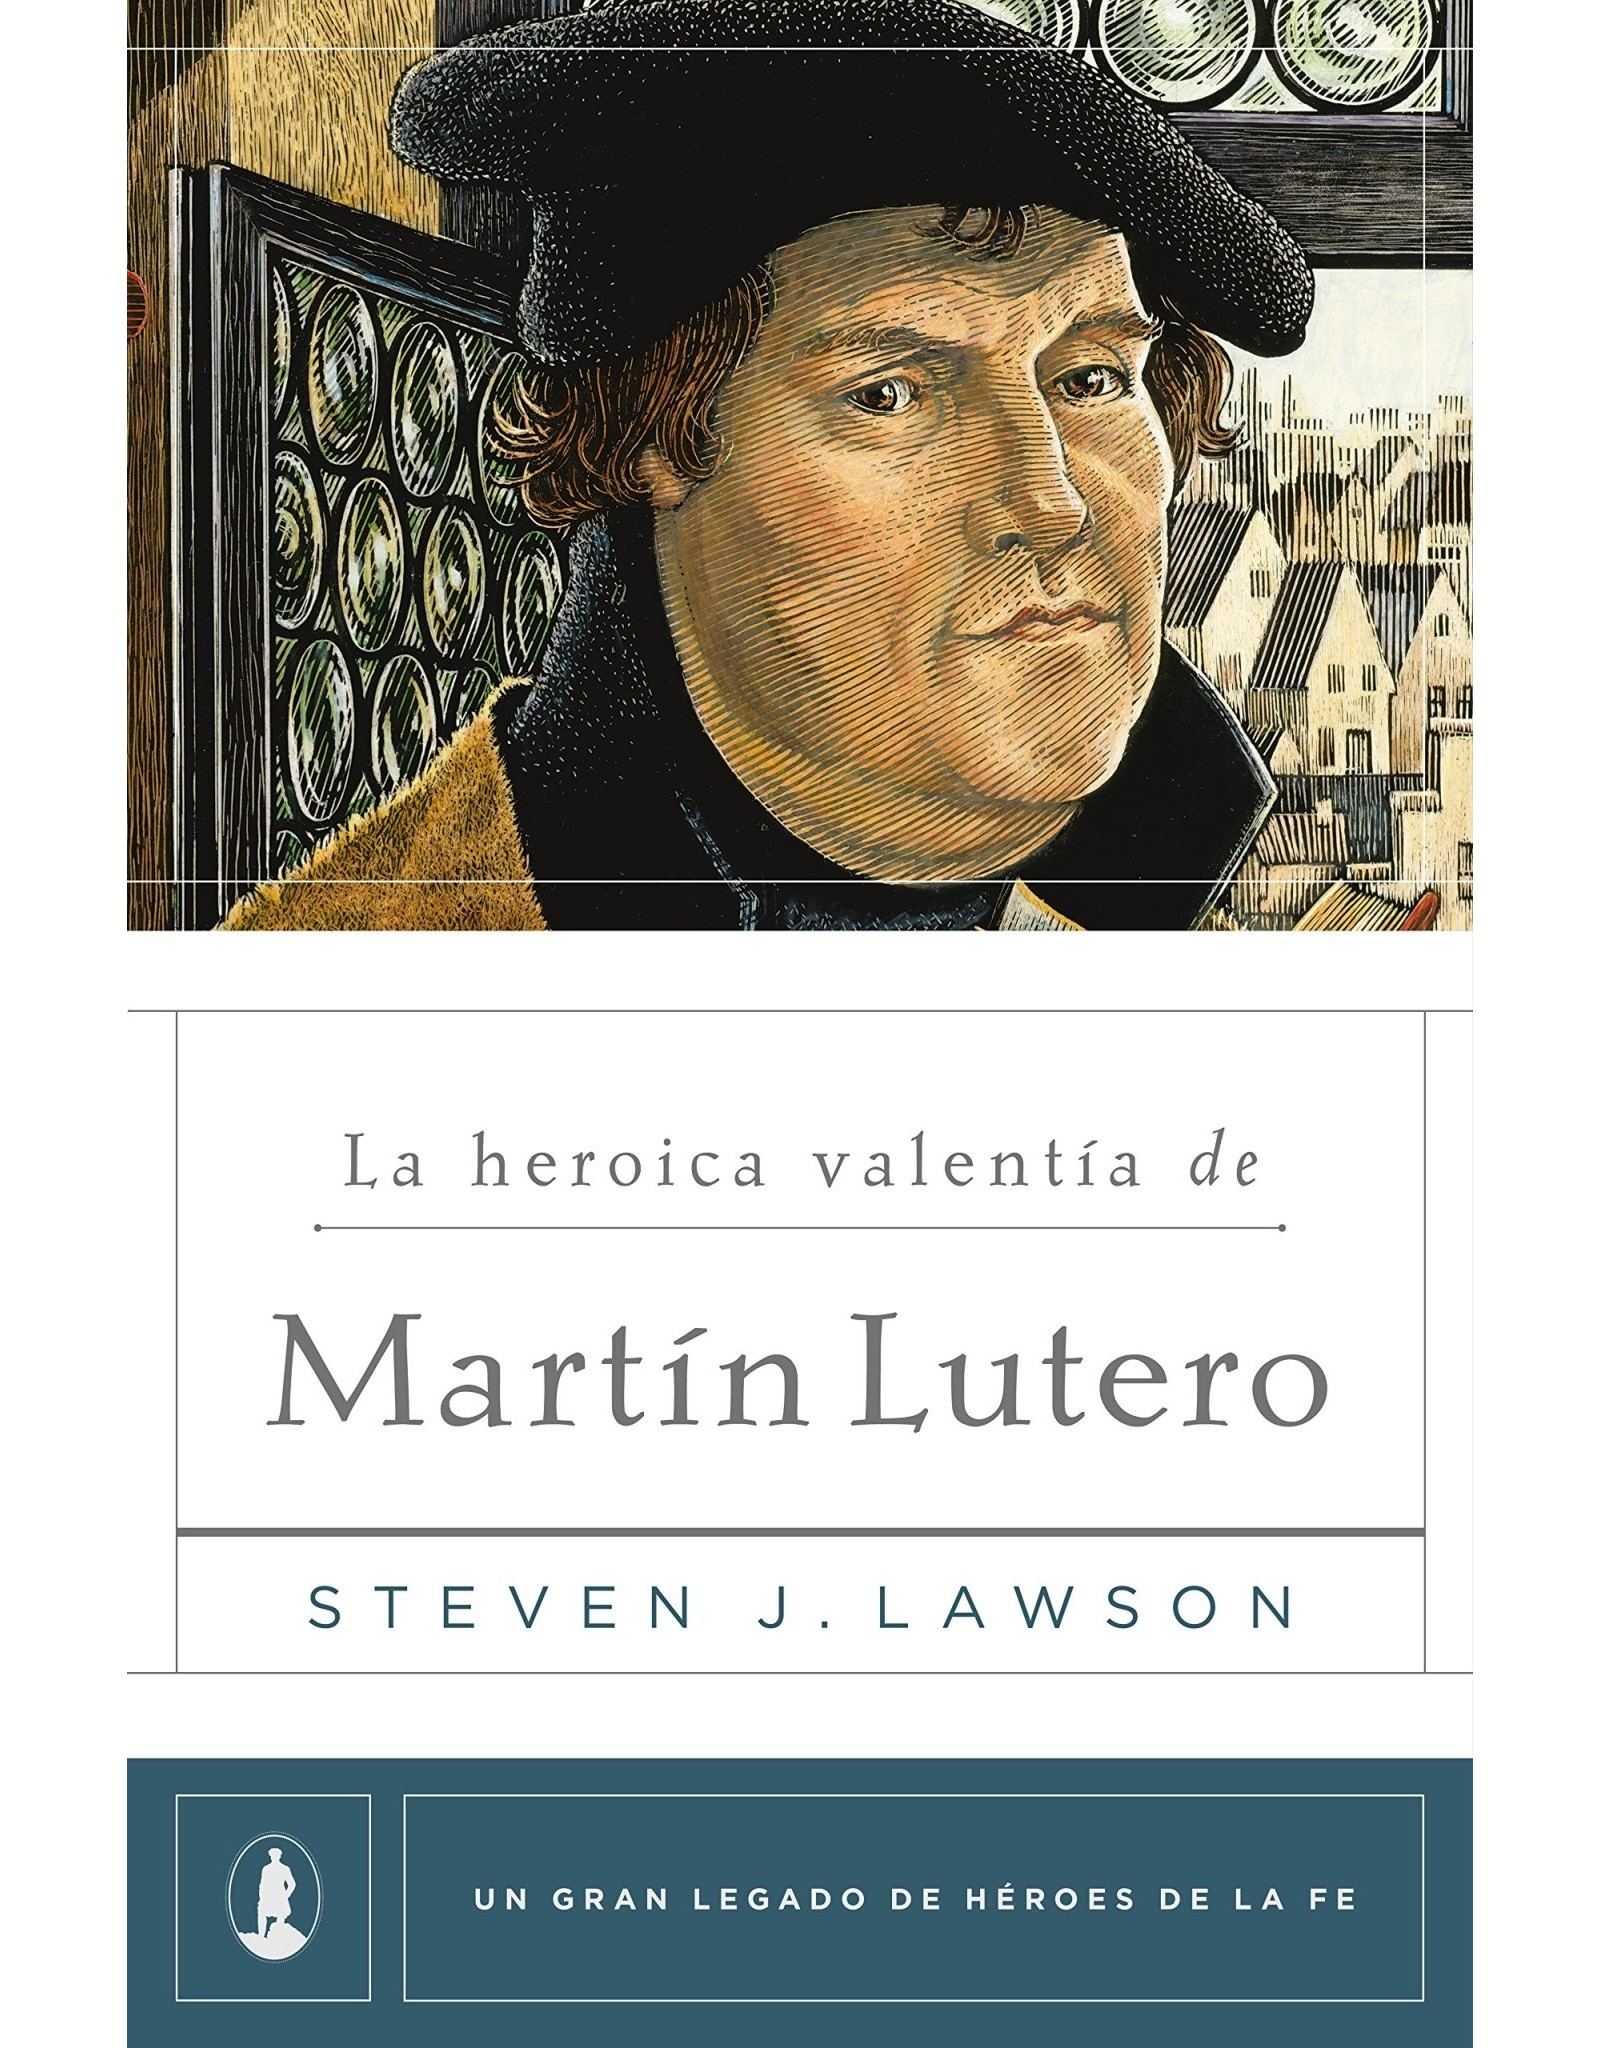 Poiema Span-The Heroic Courage of Martin Luther